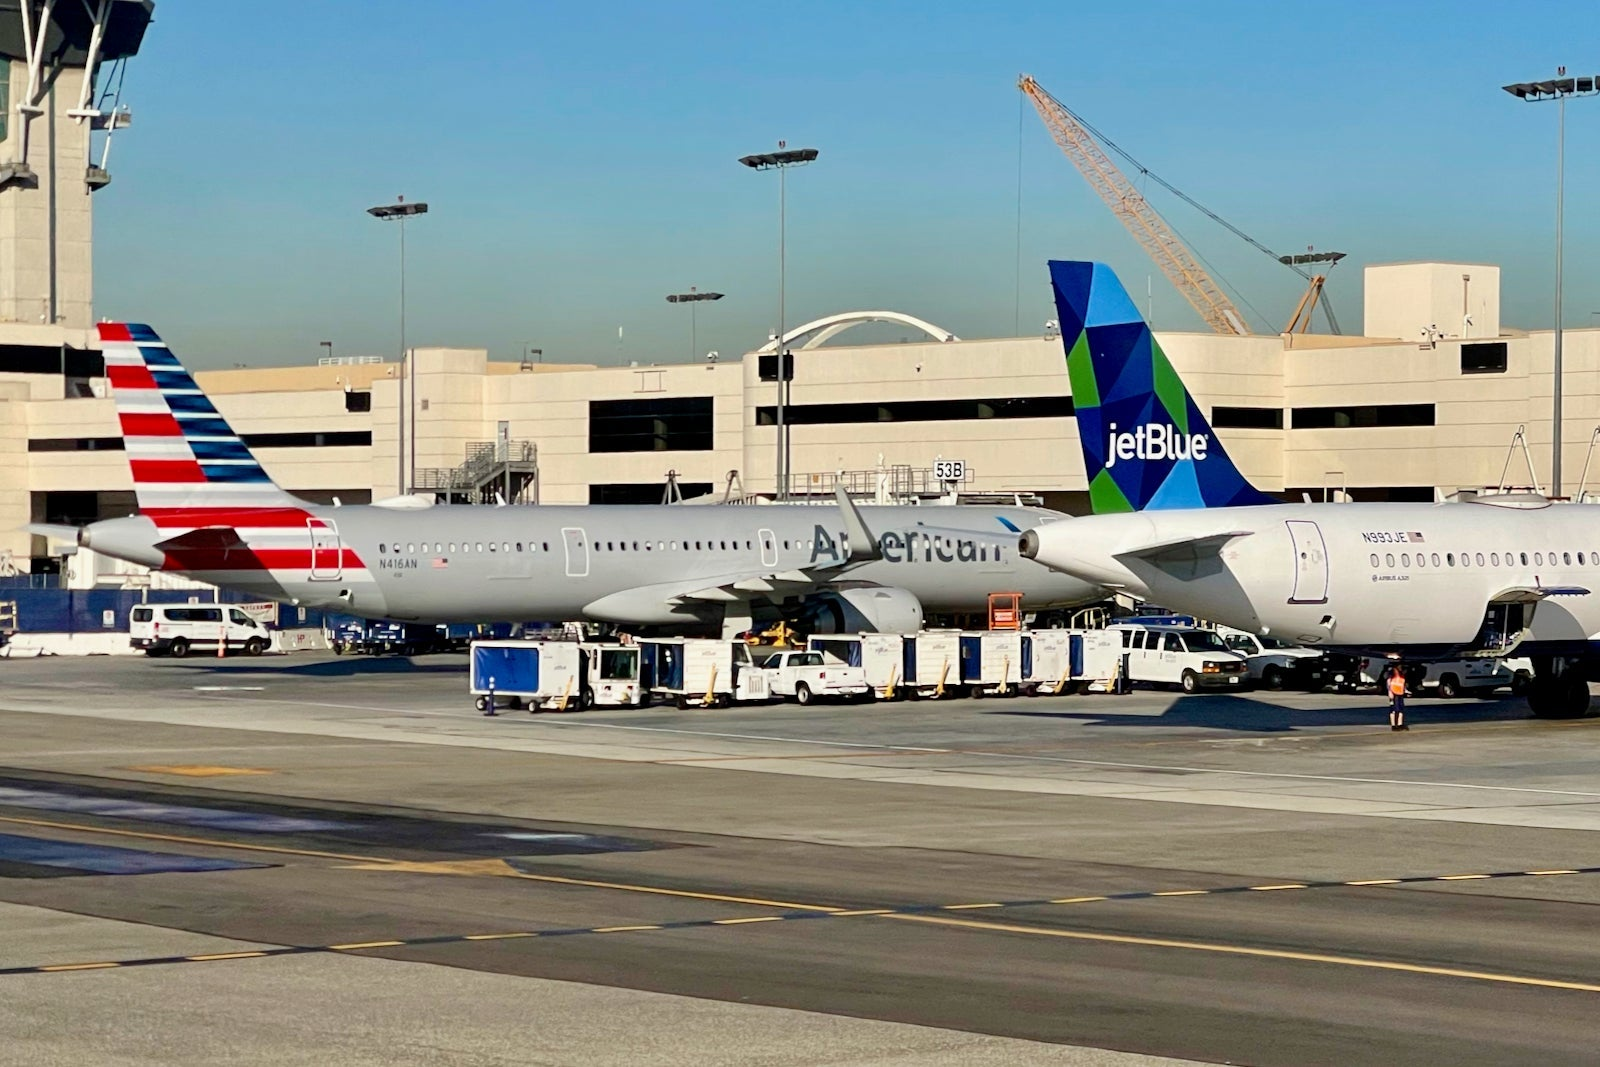 American and JetBlue are getting sued, but your travel plans are safe - The Points Guy UK